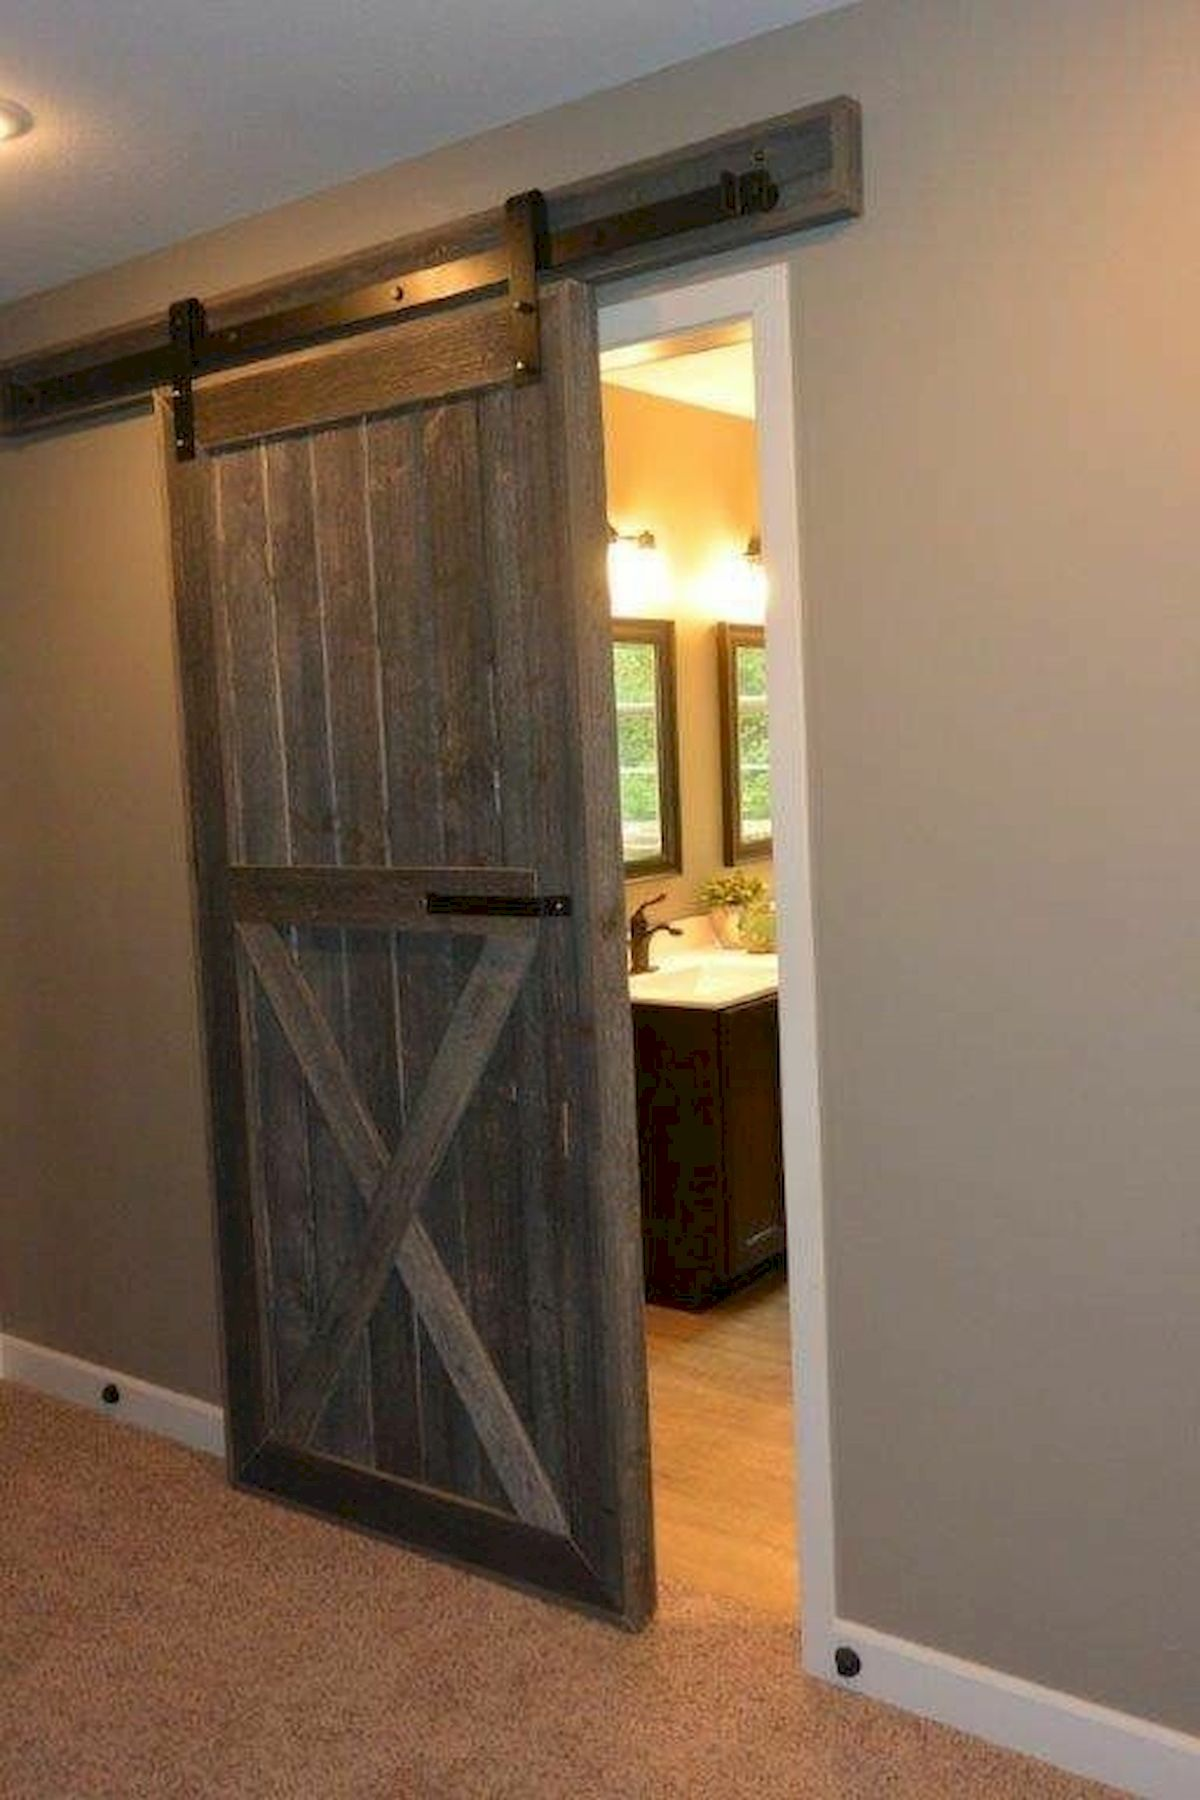 70 Rustic Home Decor Ideas for Doors and Windows (64)